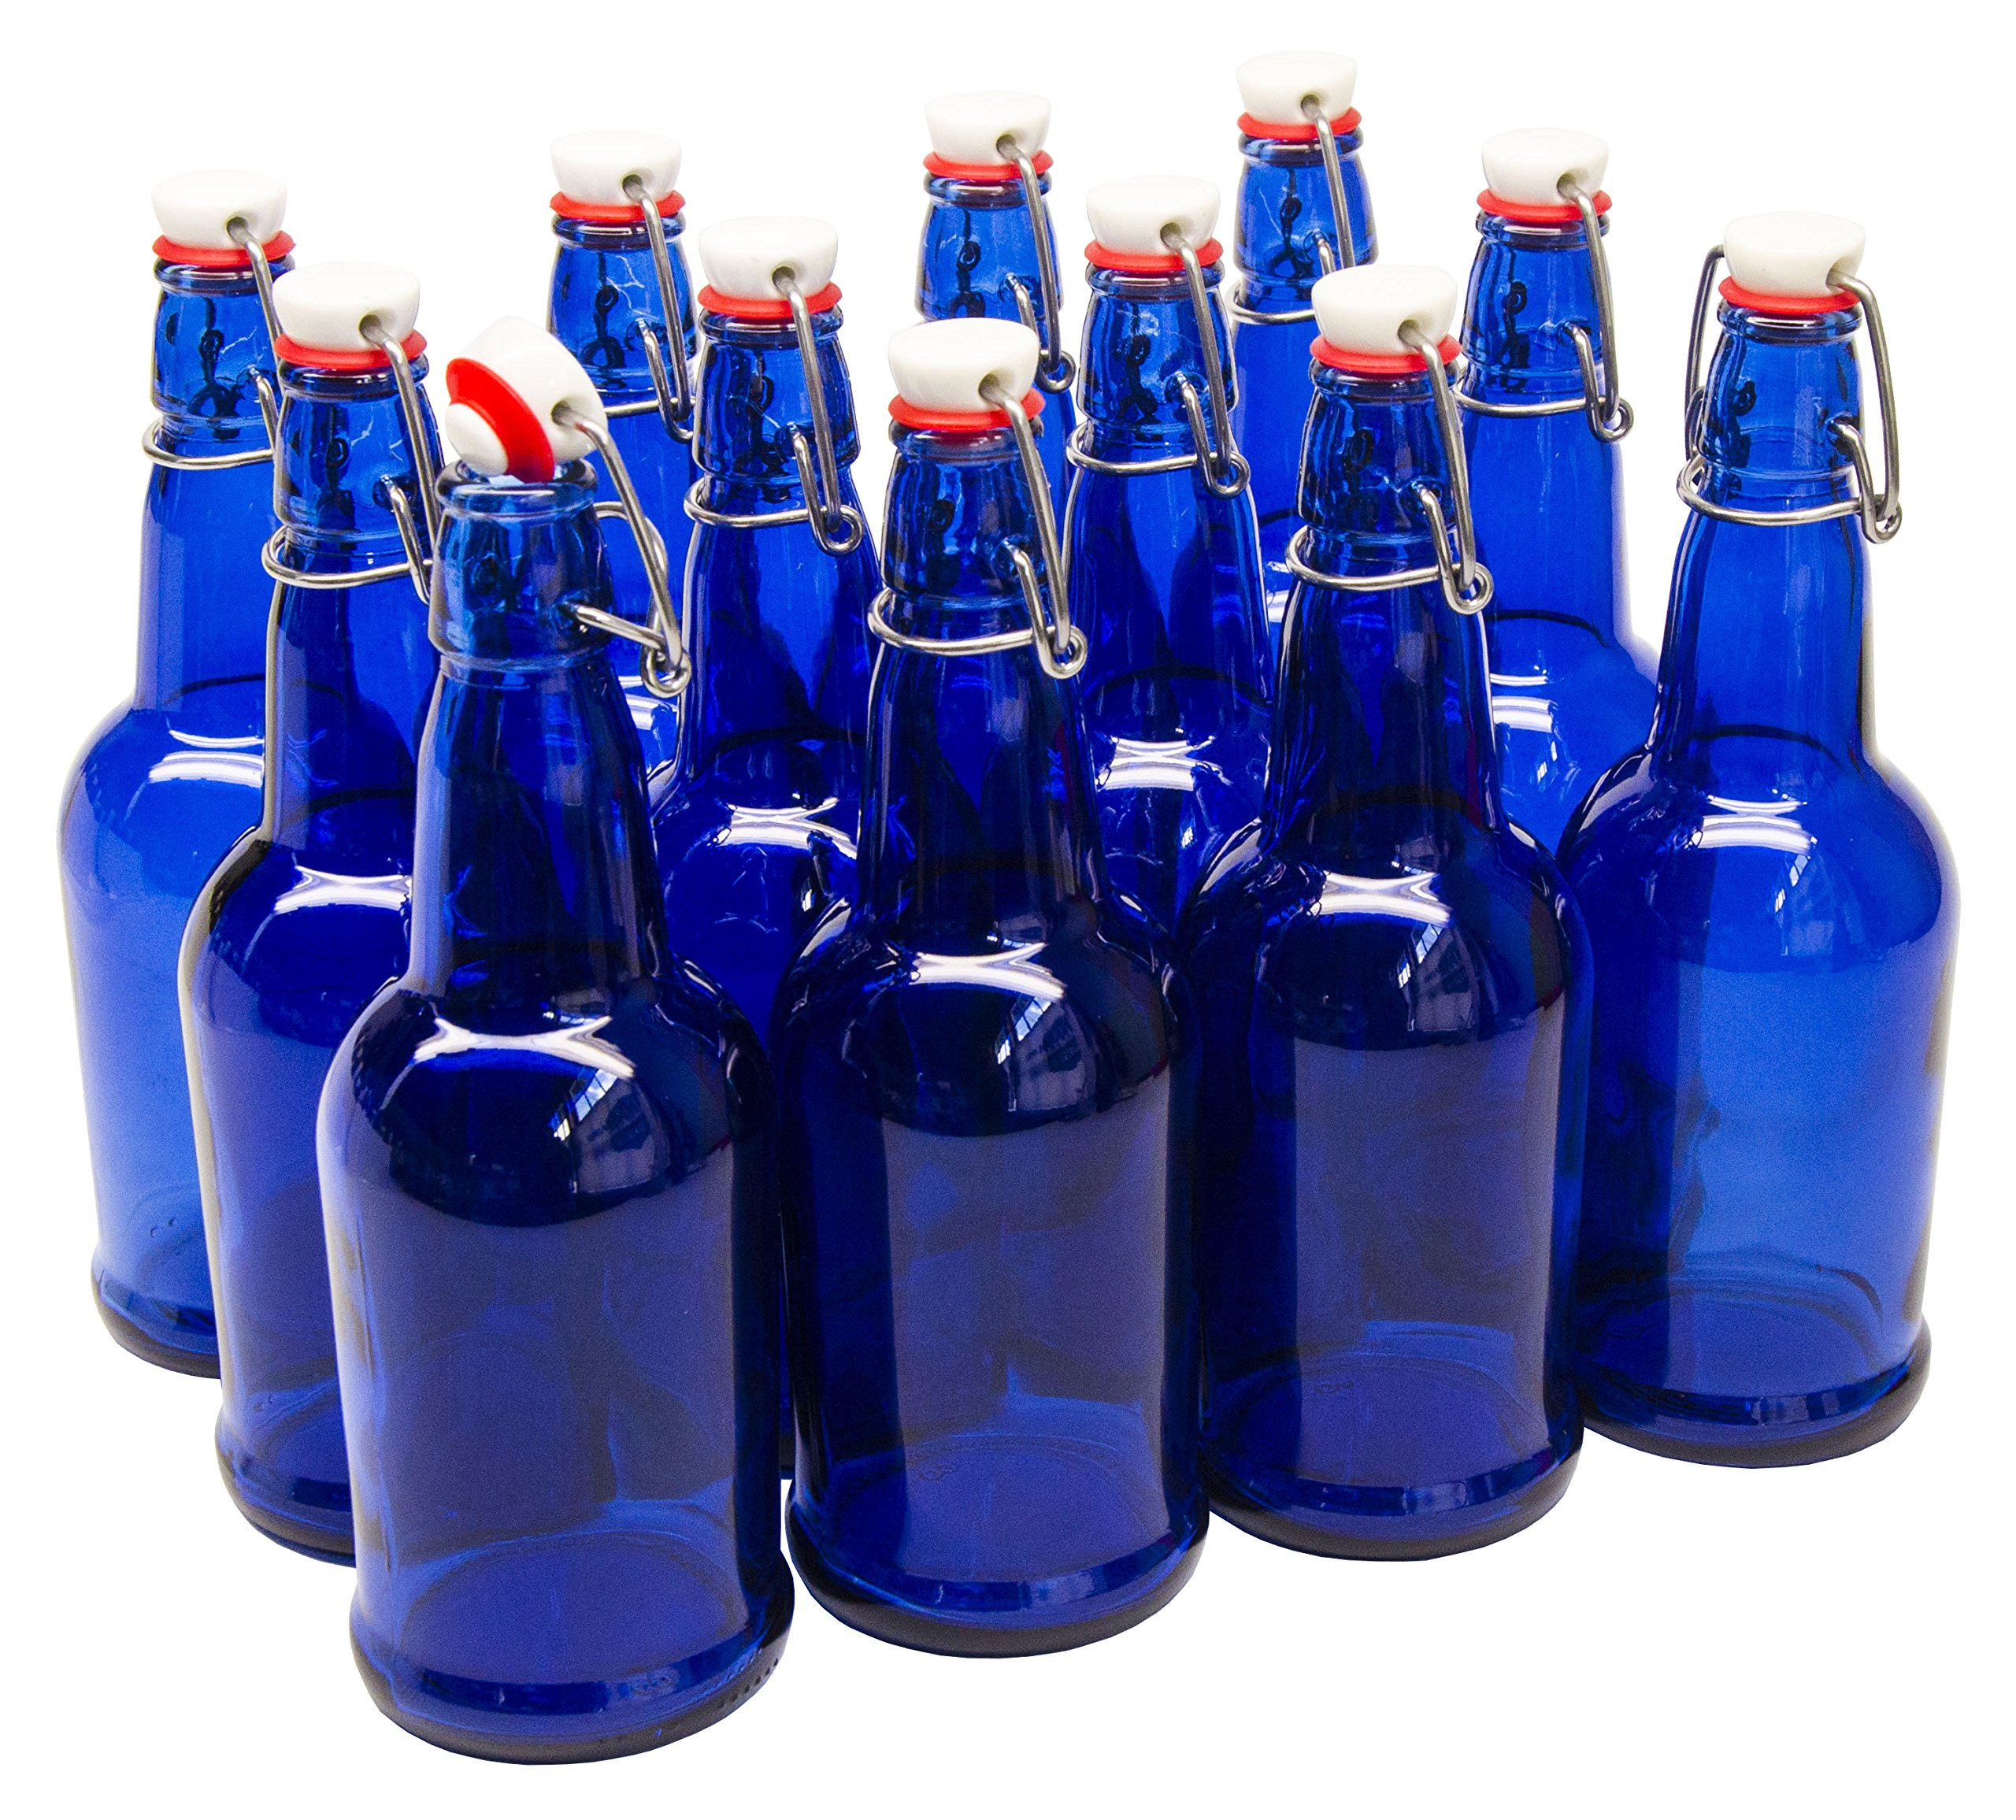 North Mountain Supply - GS-CB Cobalt Blue Coated Glass Grolsch-Style Beer Brewing Fermenting Bottles - With Ceramic Swing Top Caps - Case of 12